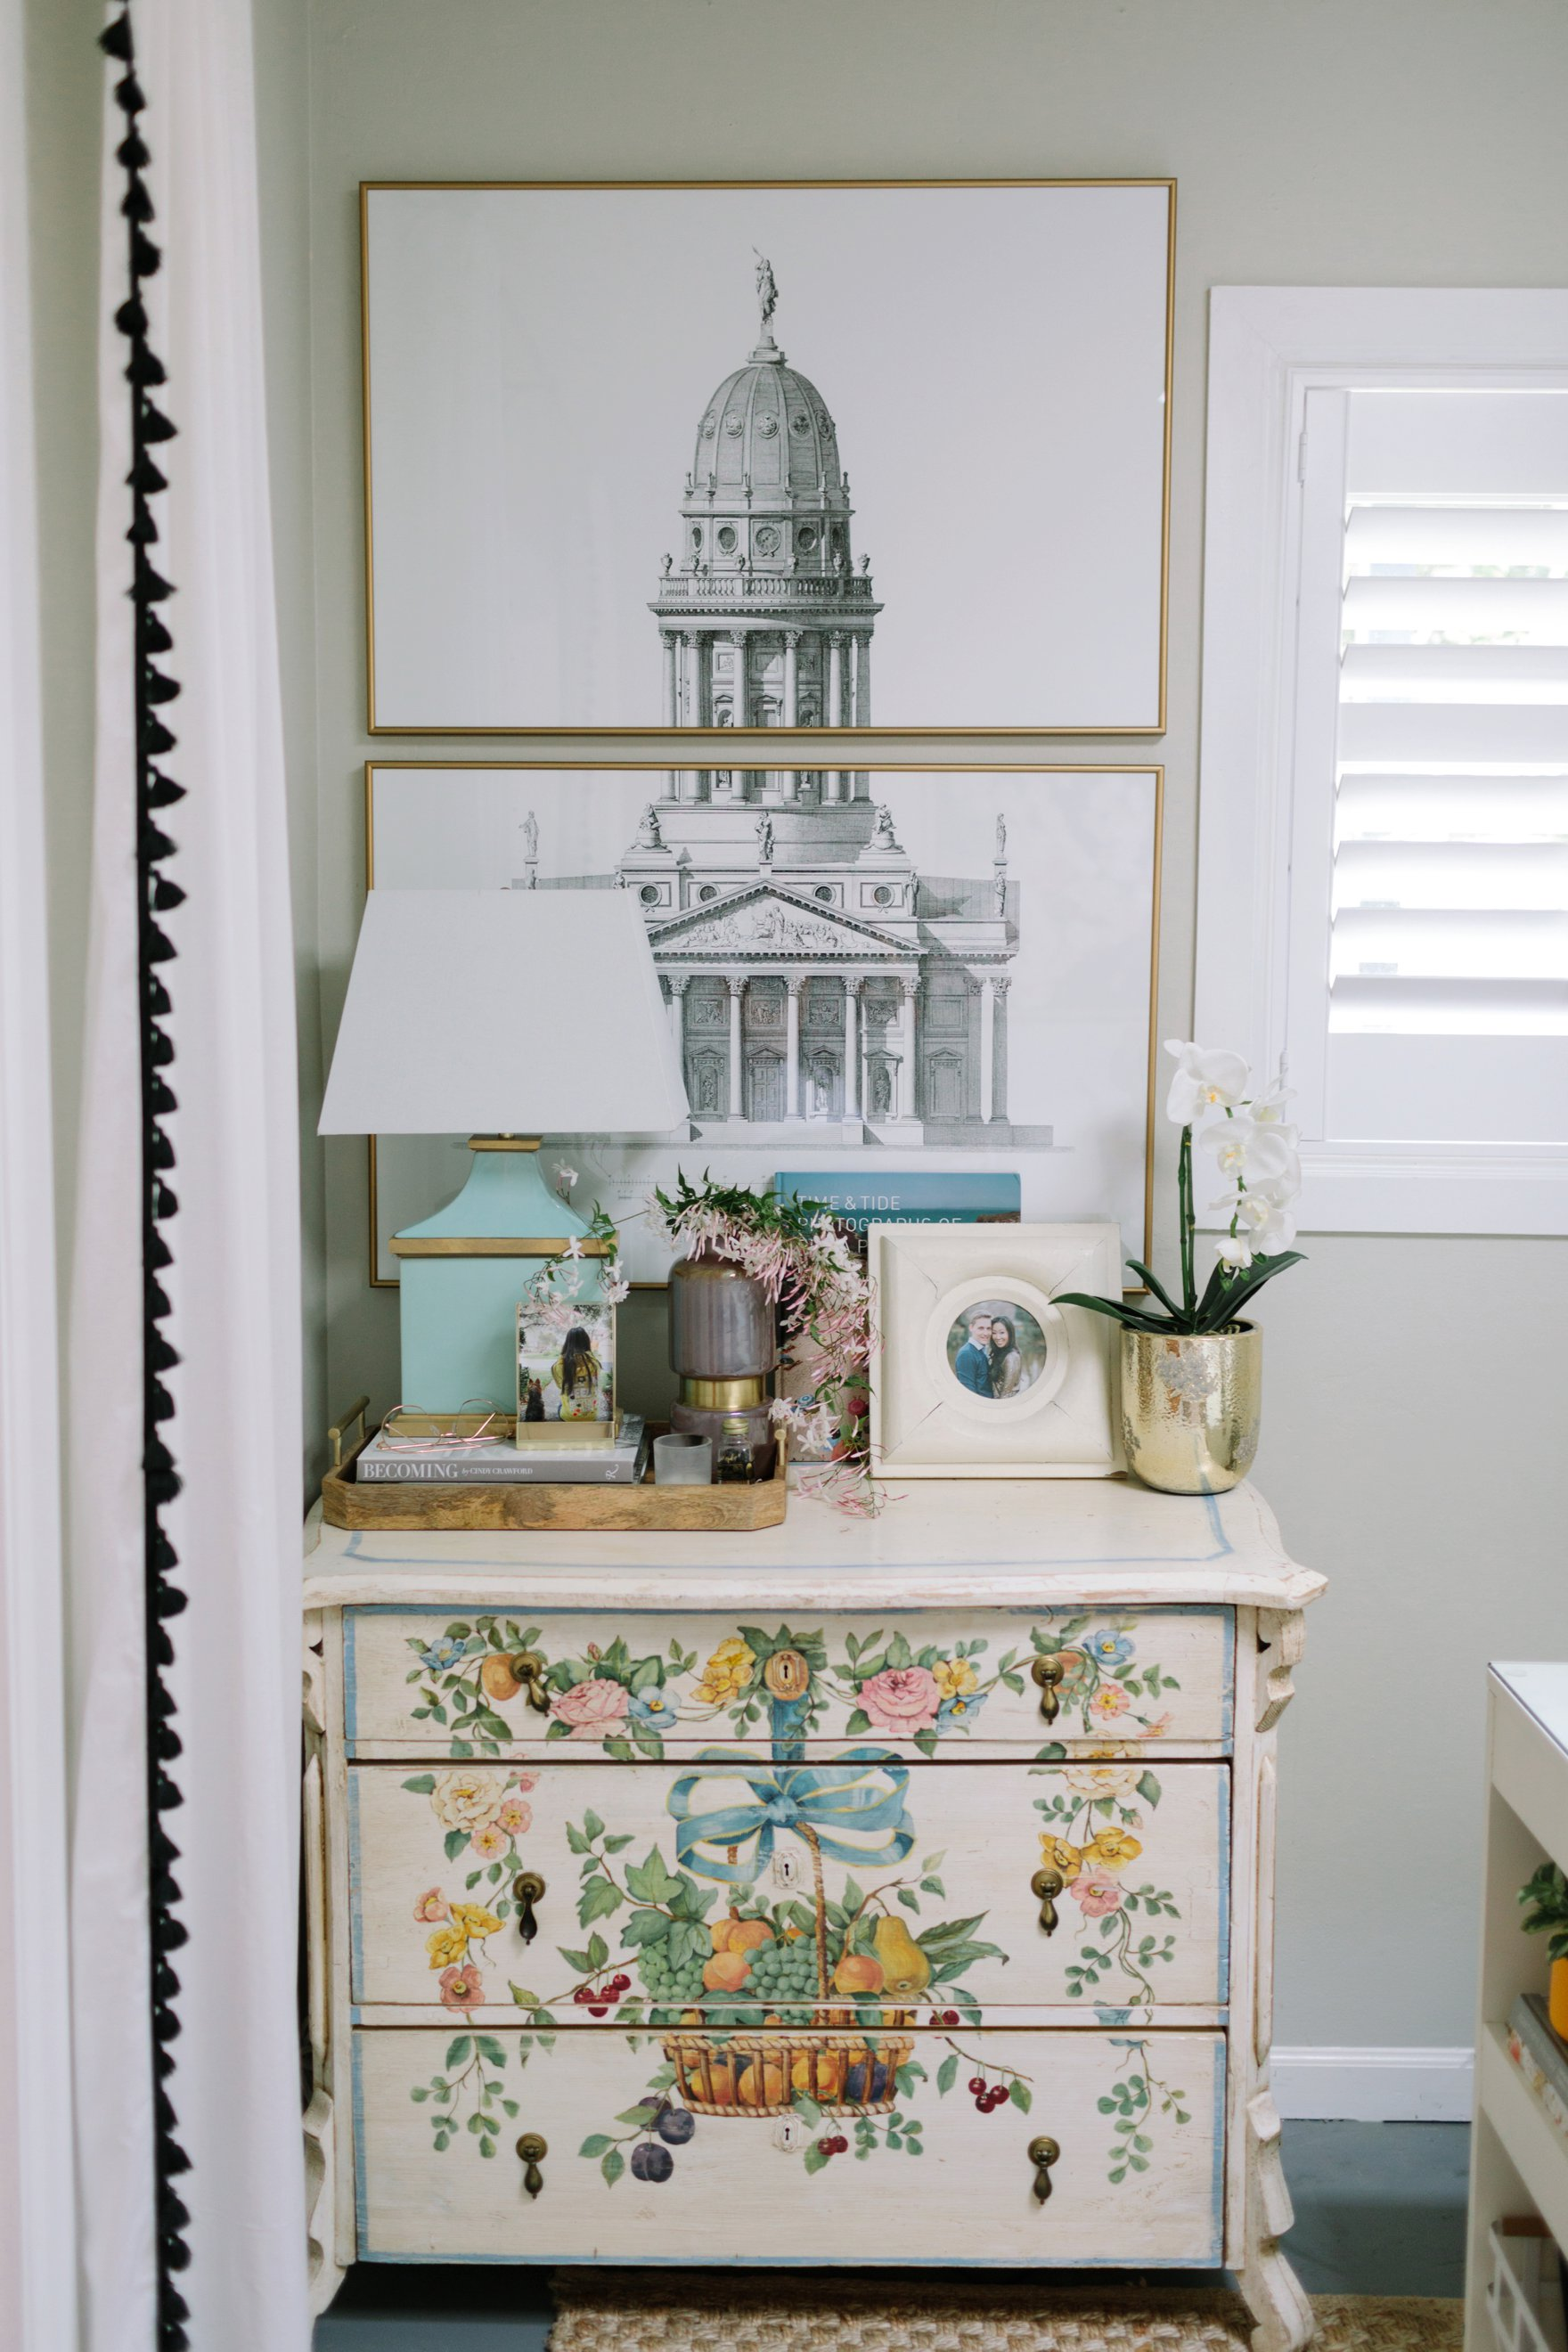 Antique English dresser featuring stacked sketch of architectural prints - blogger photographer home office